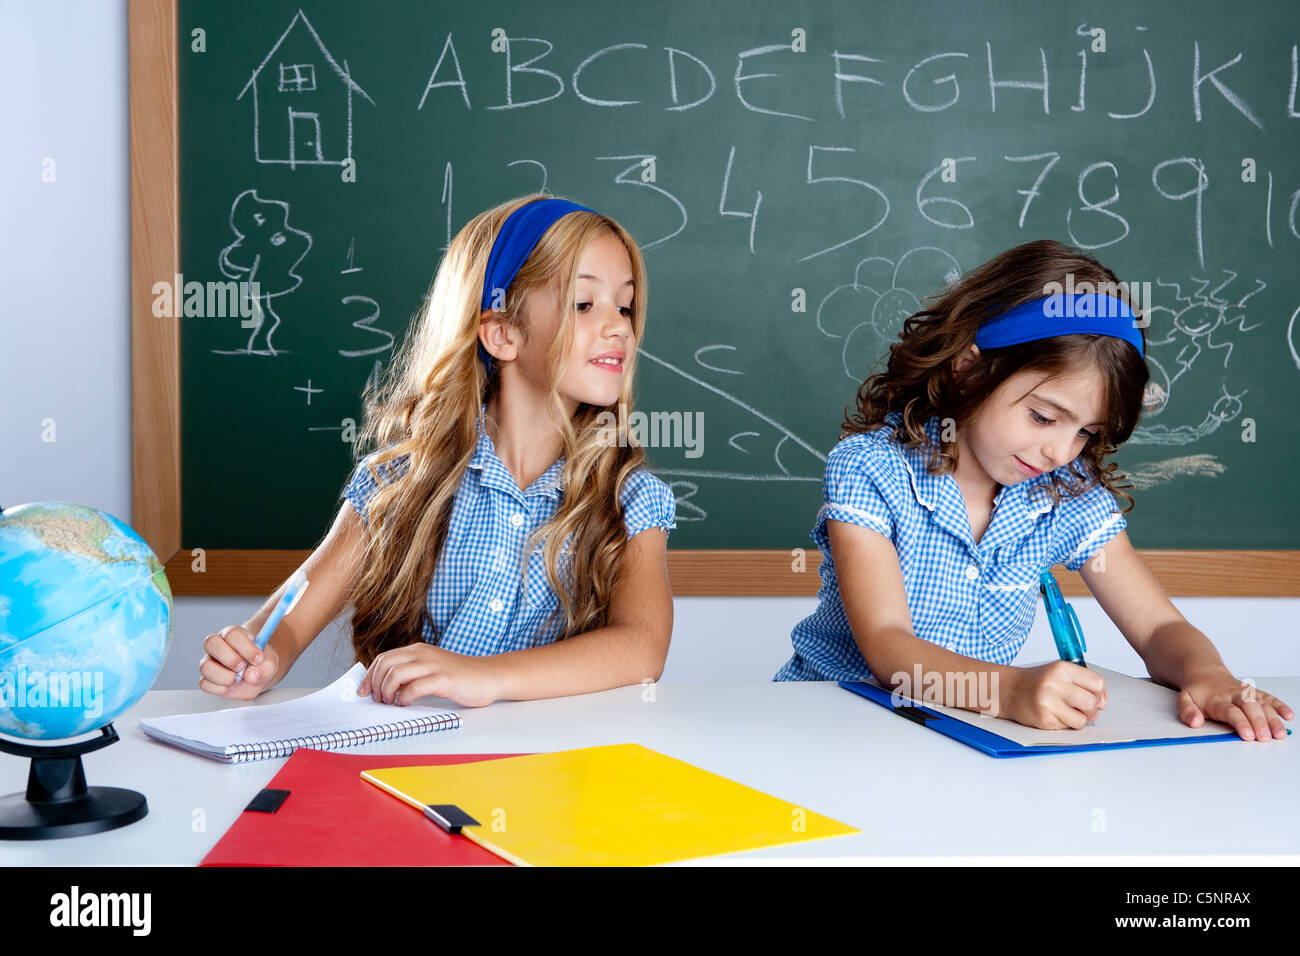 classroom with two kids students cheating on test exam at